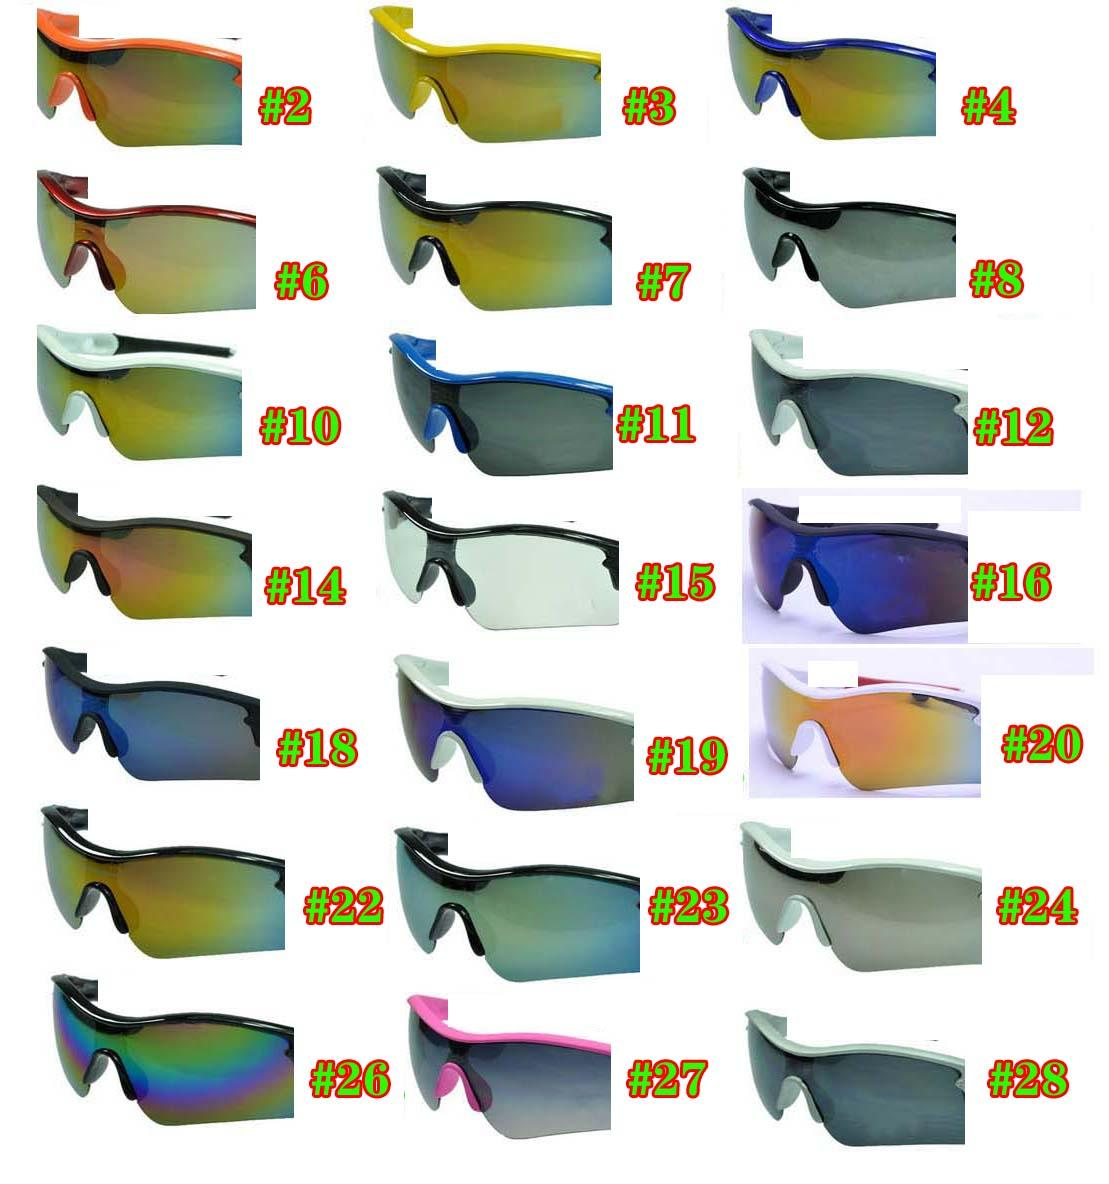 HOT men sports spectacles Bicycle Glass outdoor sunglasses PINK cycling sunglasses fashion dazzle colour mirrors A+++ 29colors free shipping